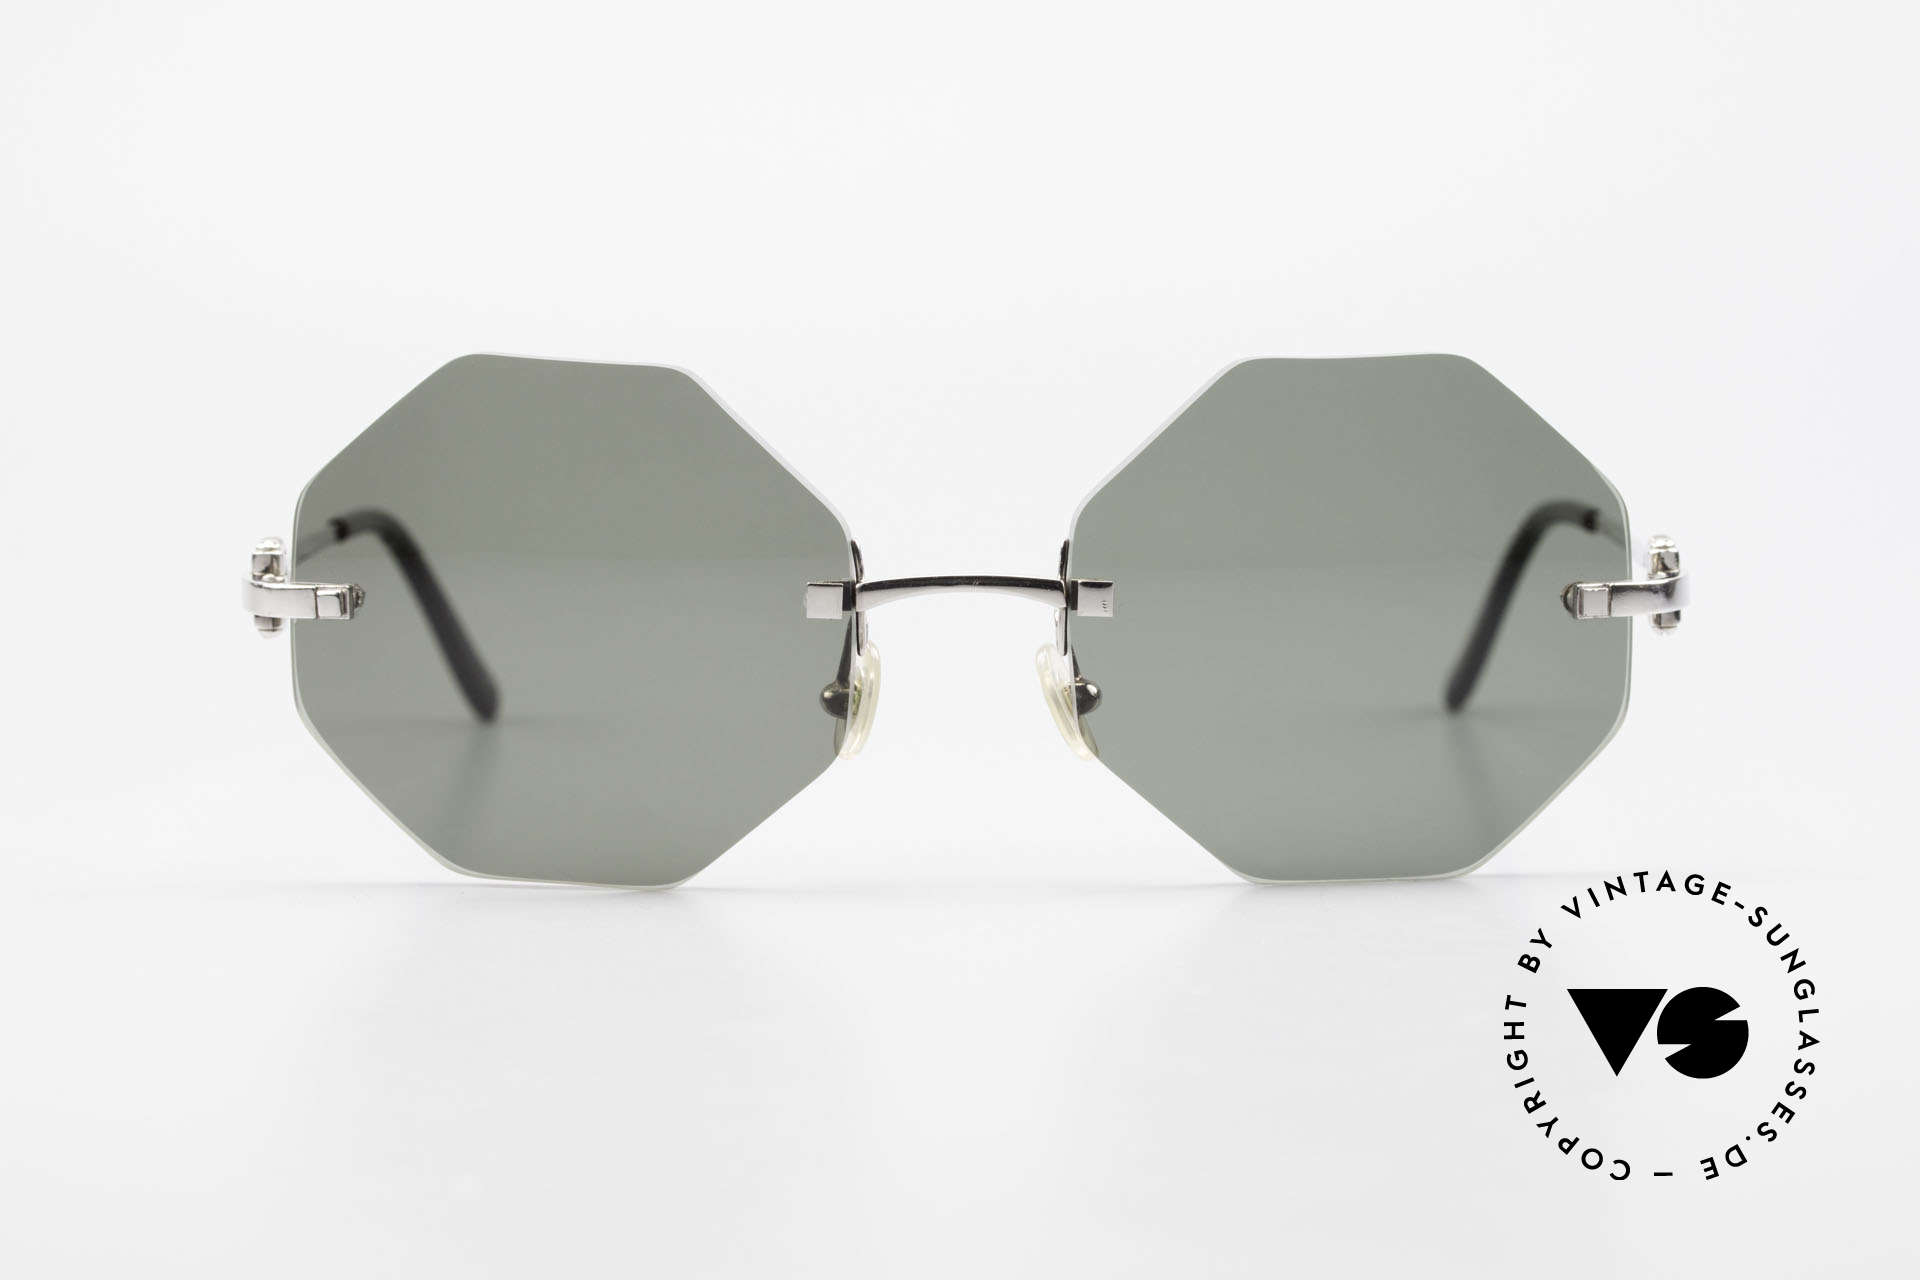 Cartier Rimless Octag Octagonal Luxury Sunglasses, model of the rimless series with new OCTAG lenses, Made for Men and Women